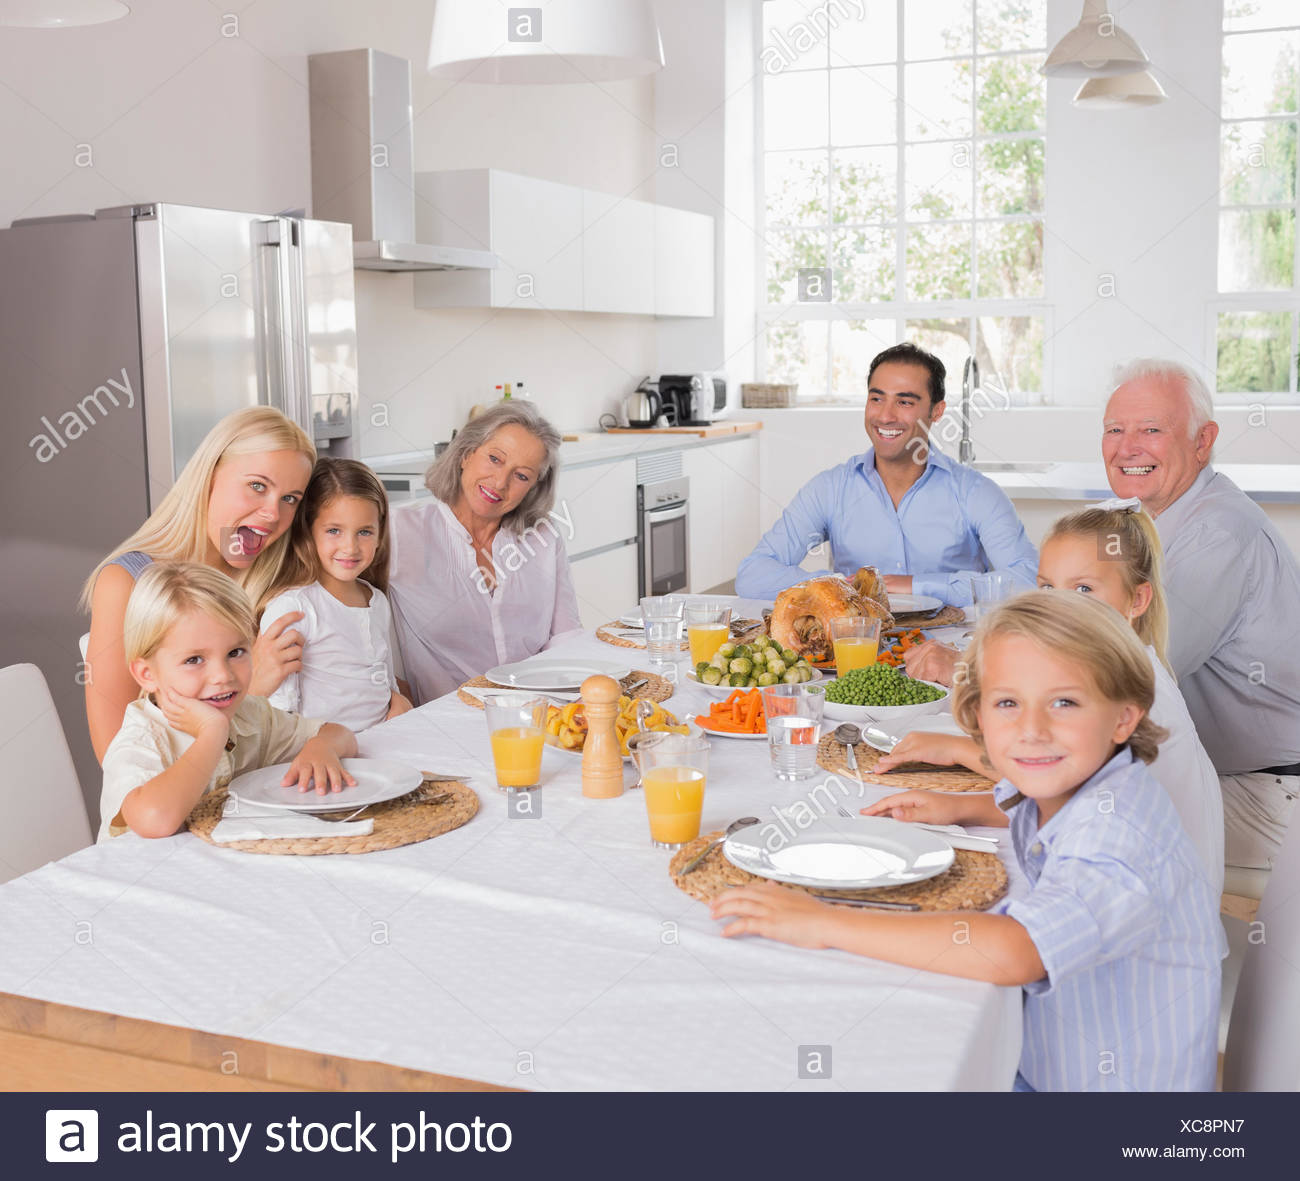 Happy family going to eat - Stock Image